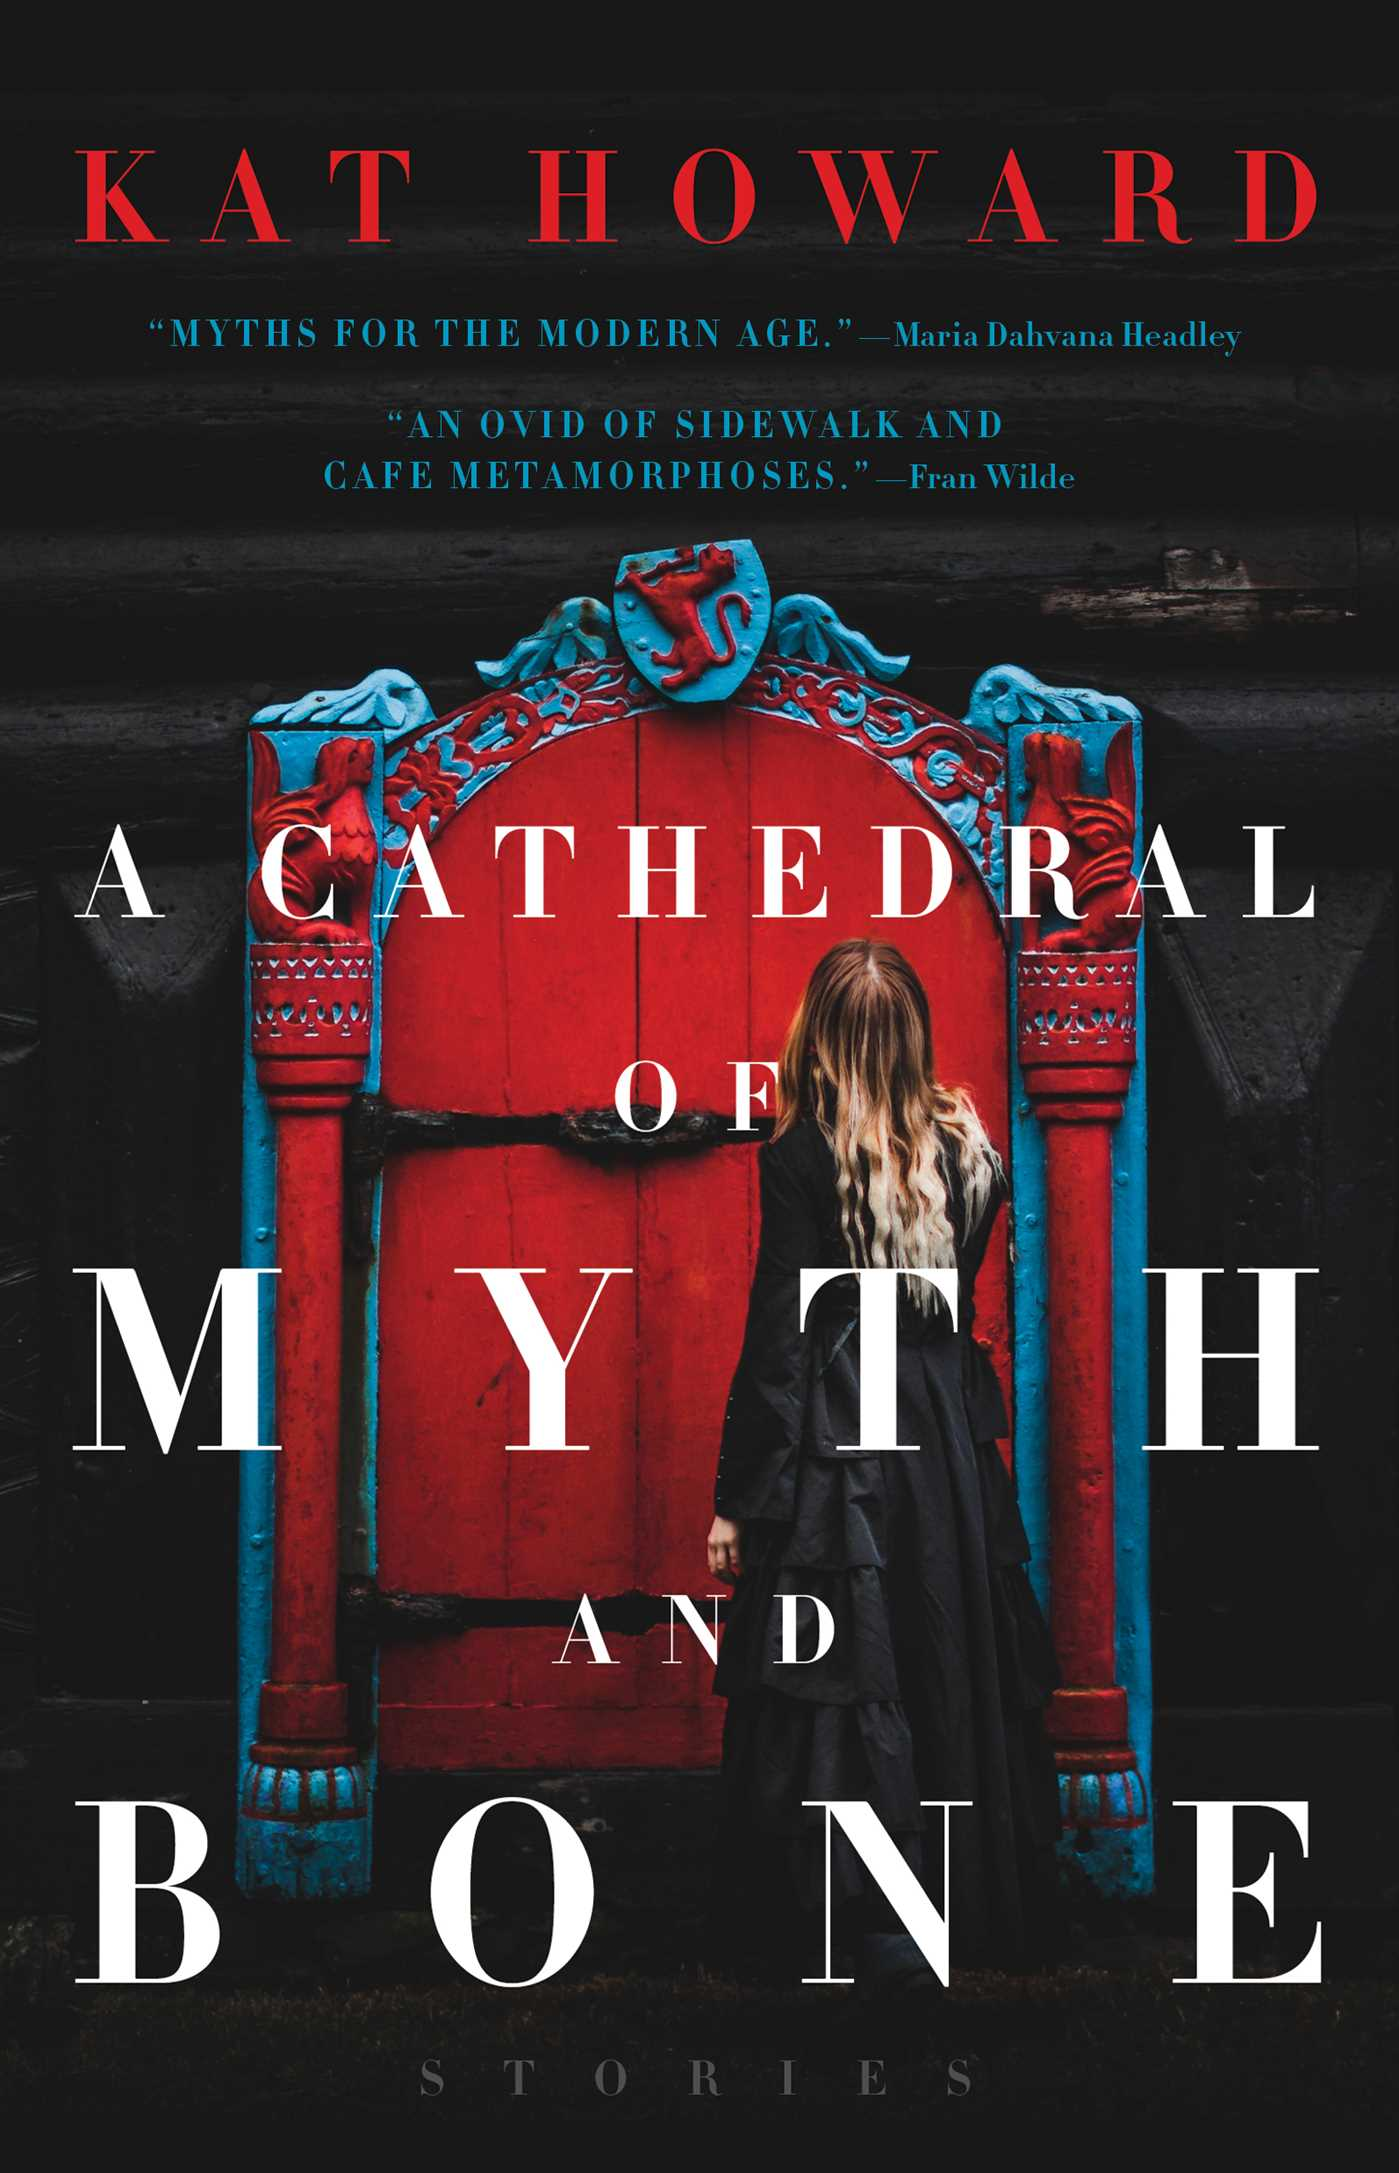 A cathedral of myth and bone 9781481492171 hr